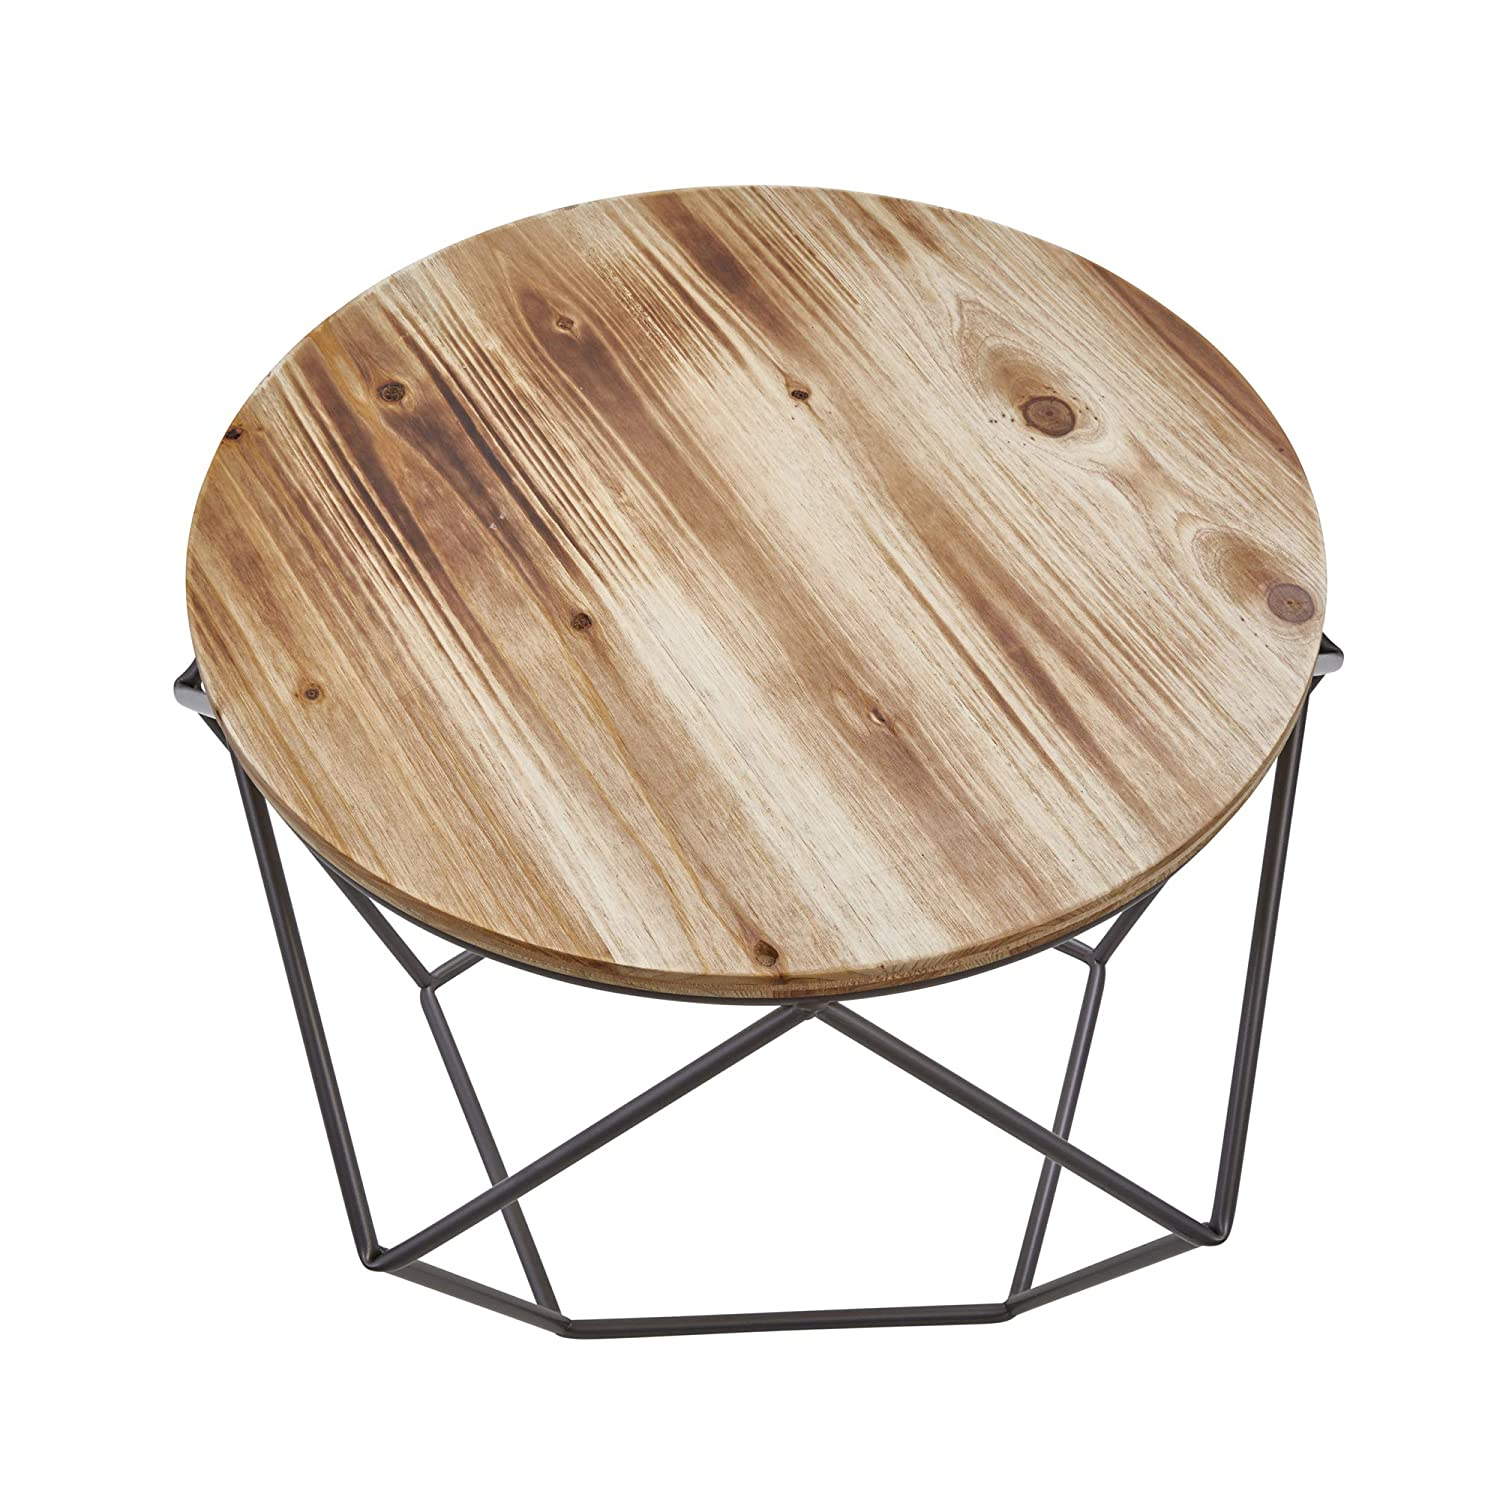 Brown Metal Sagebrook Home 11082 Metal Accent Table W// Wood Top 23 x 23 x 16 Inches